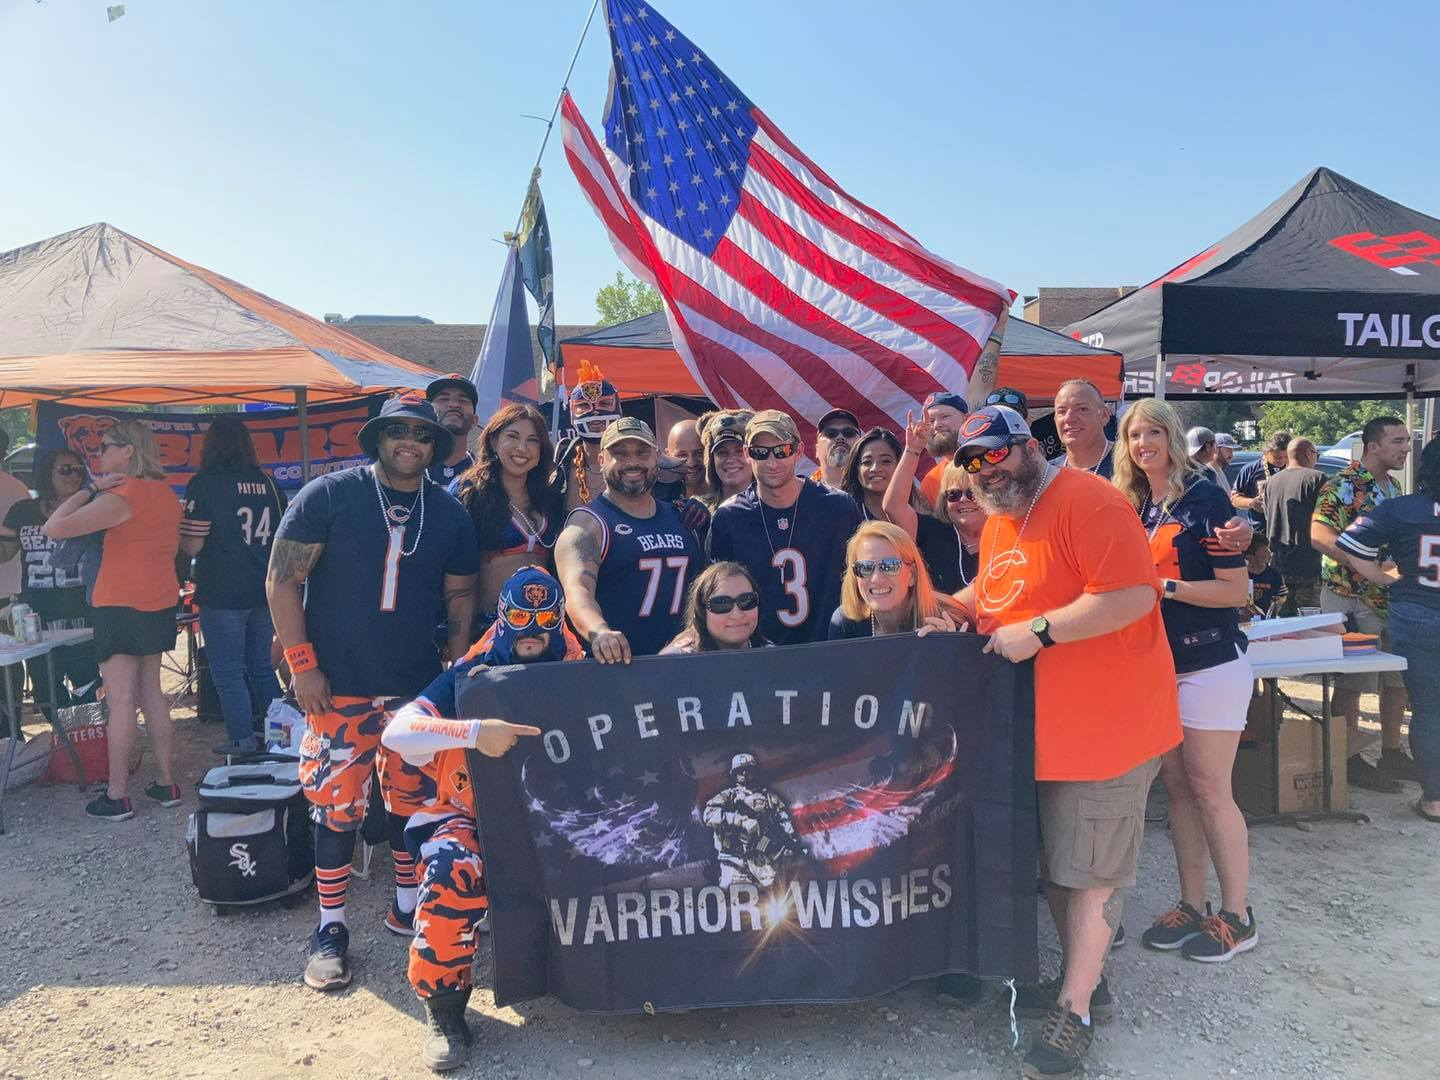 Navy and Marines team up as their wish is granted at a Chicago Bears Game.